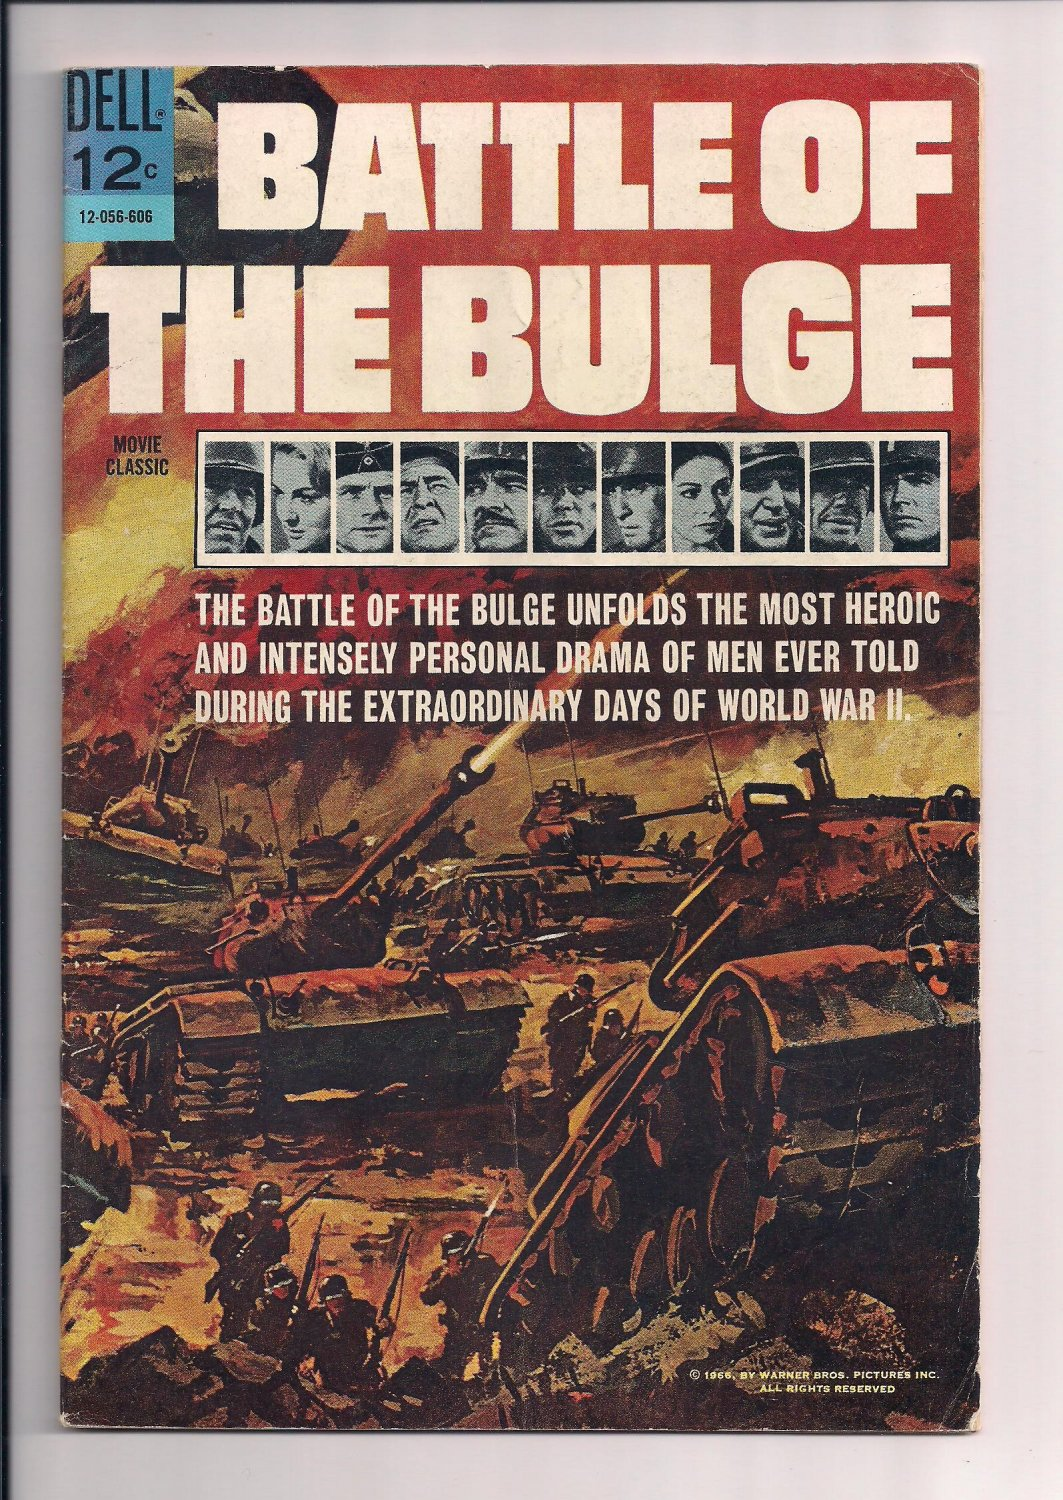 Dell Battle of the Bulge Comic #606 (1966) fine / very fine condition comic